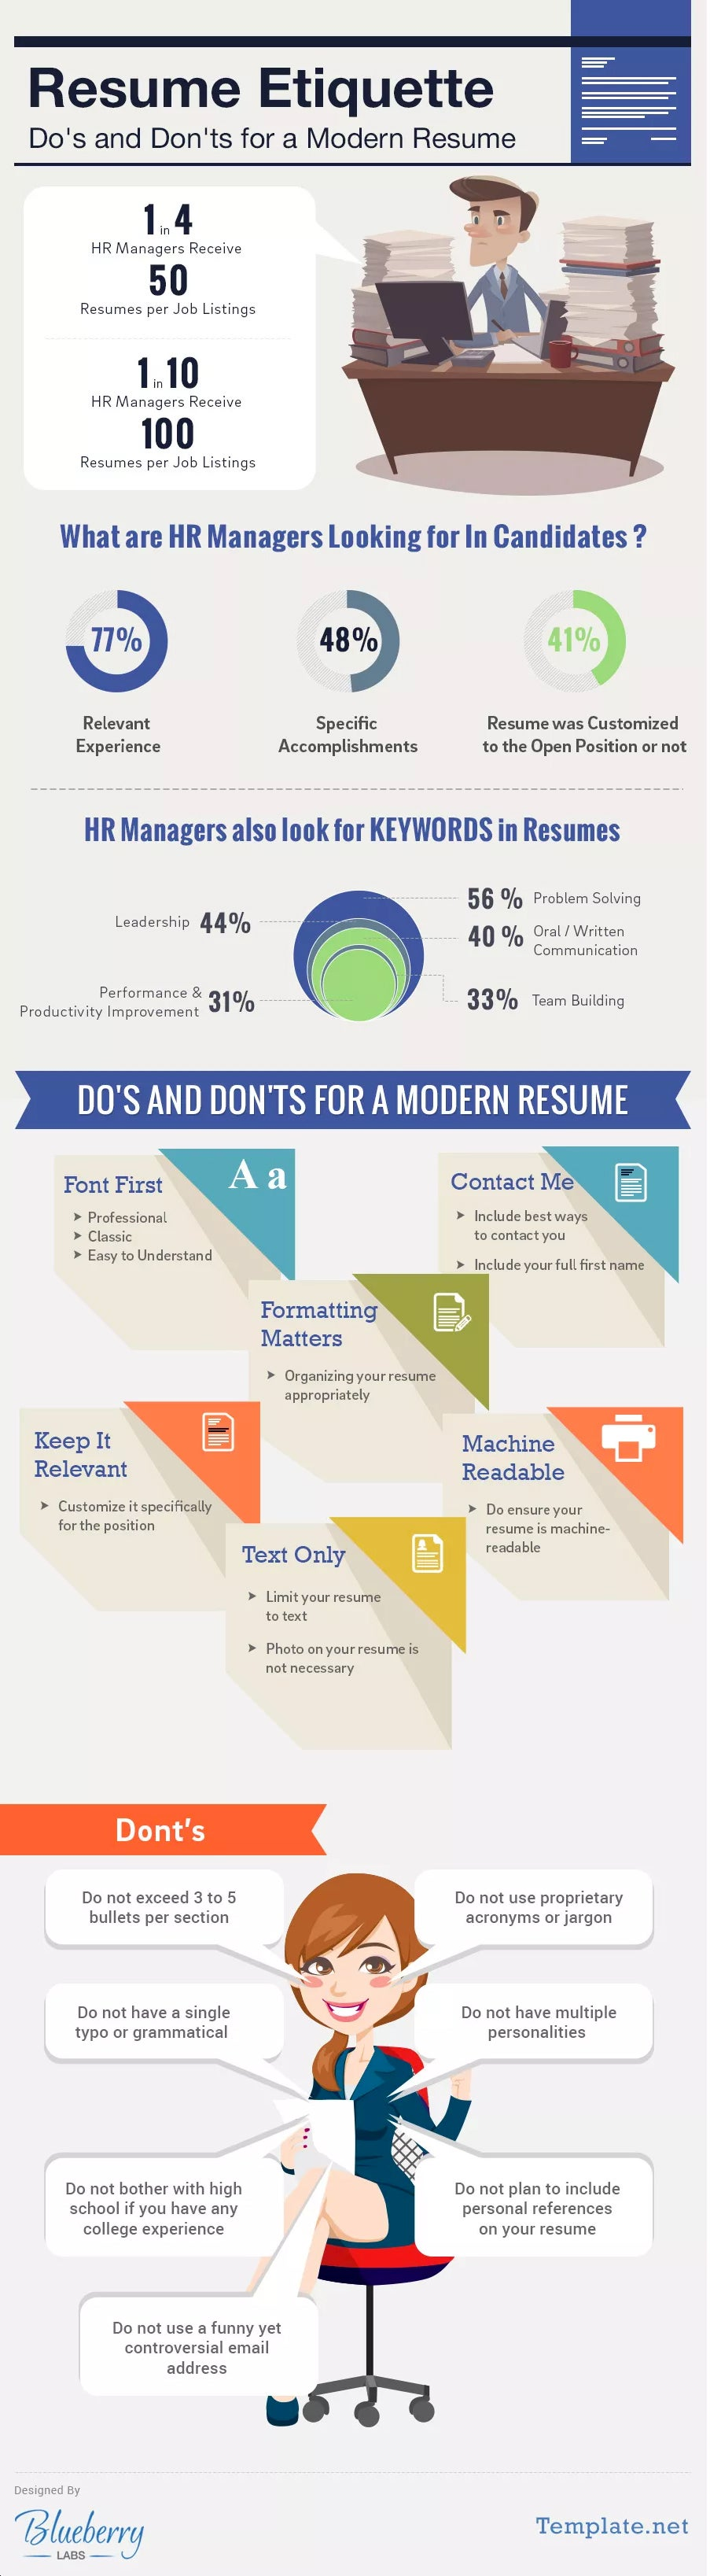 the do s and don ts of the modern resumé infographic click to enlarge